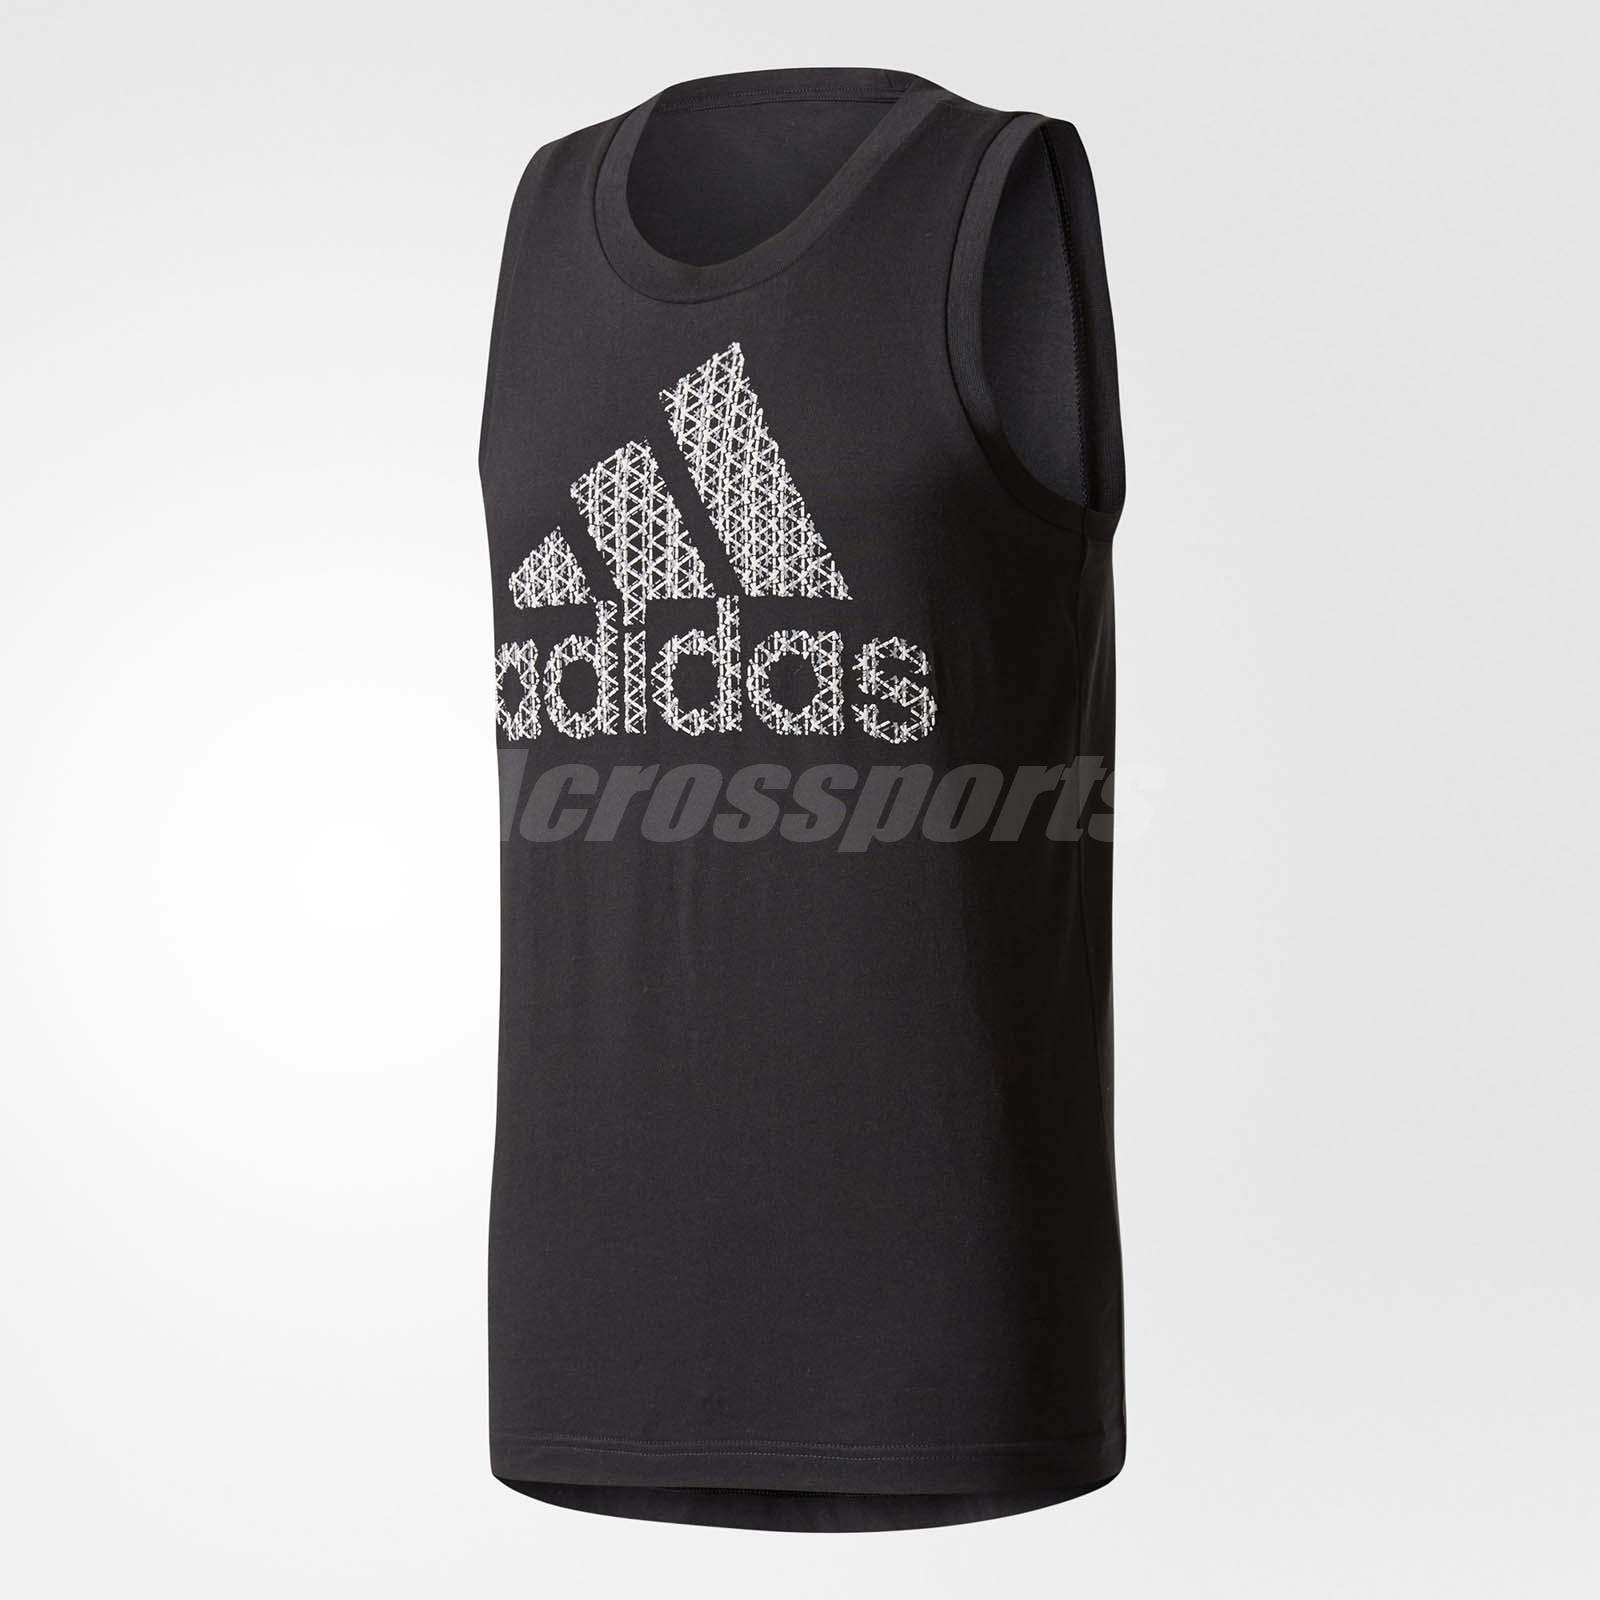 84d8aab88d650 adidas Men Bos Tank Sleeveless Tops Sports Training Running Workout Black  CD9098